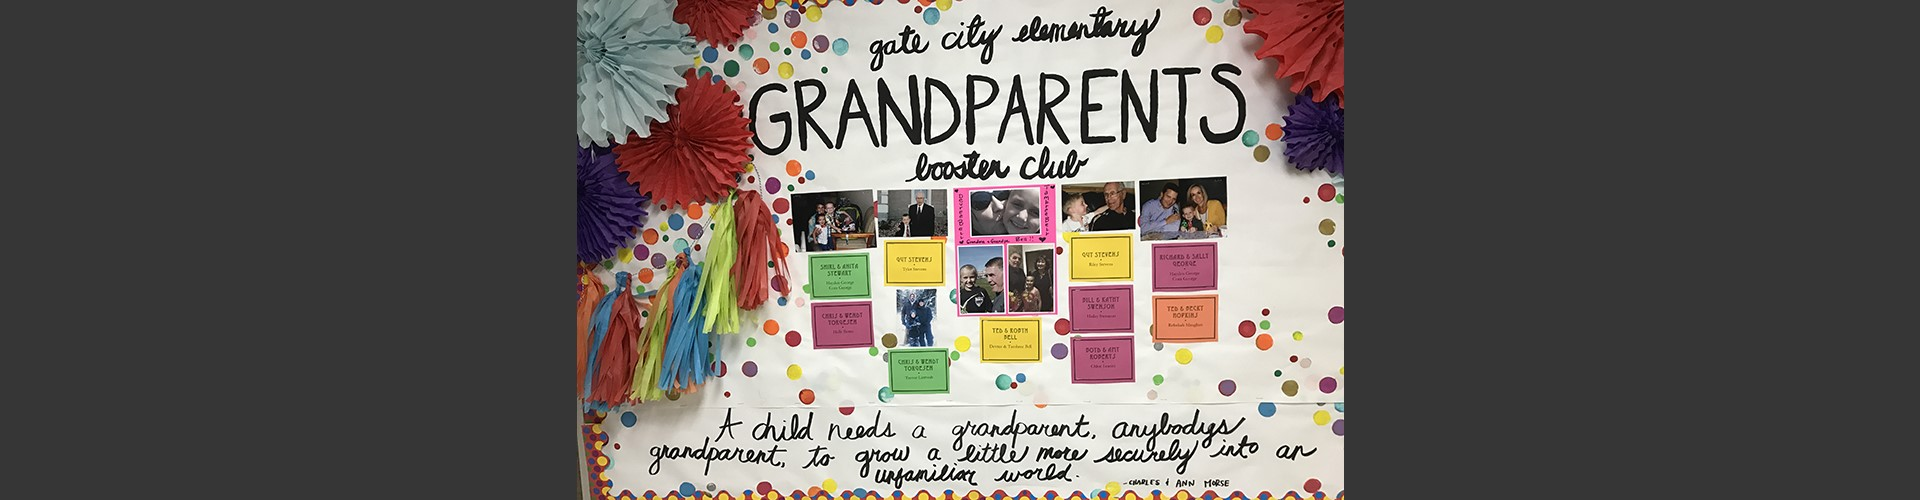 Bulletin board for Grandparents Booster Club